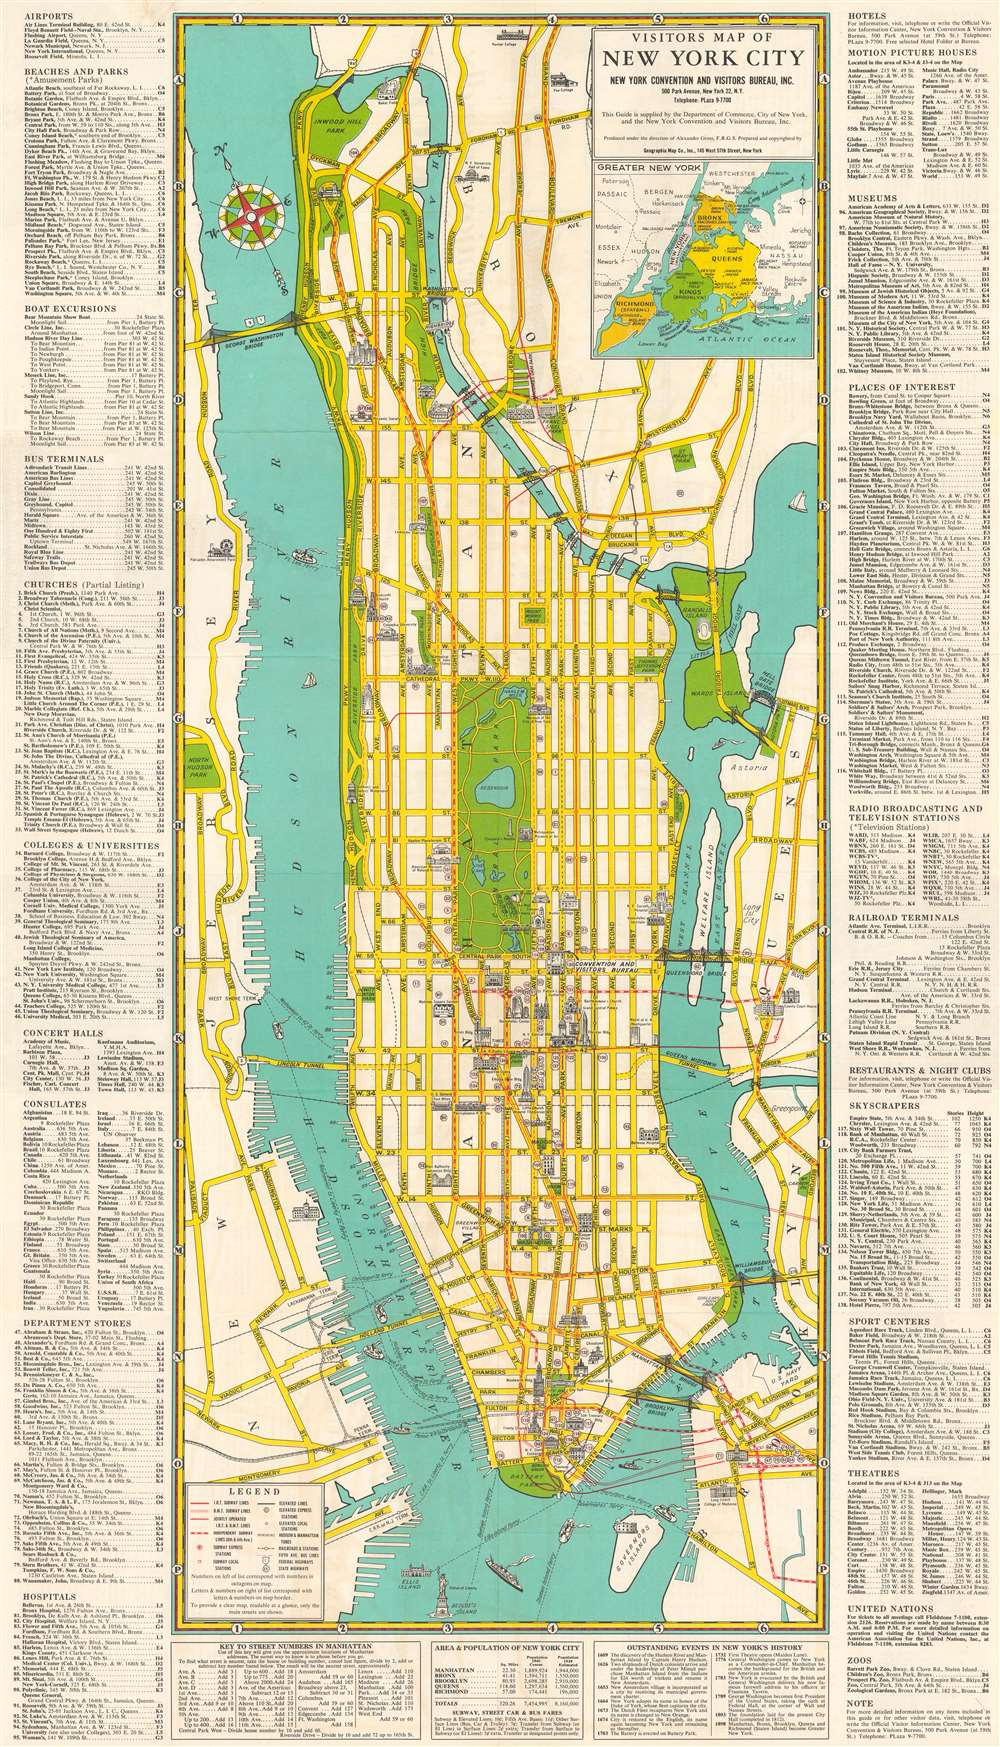 1948 Geographia City Plan or Map of Manhattan, New York City